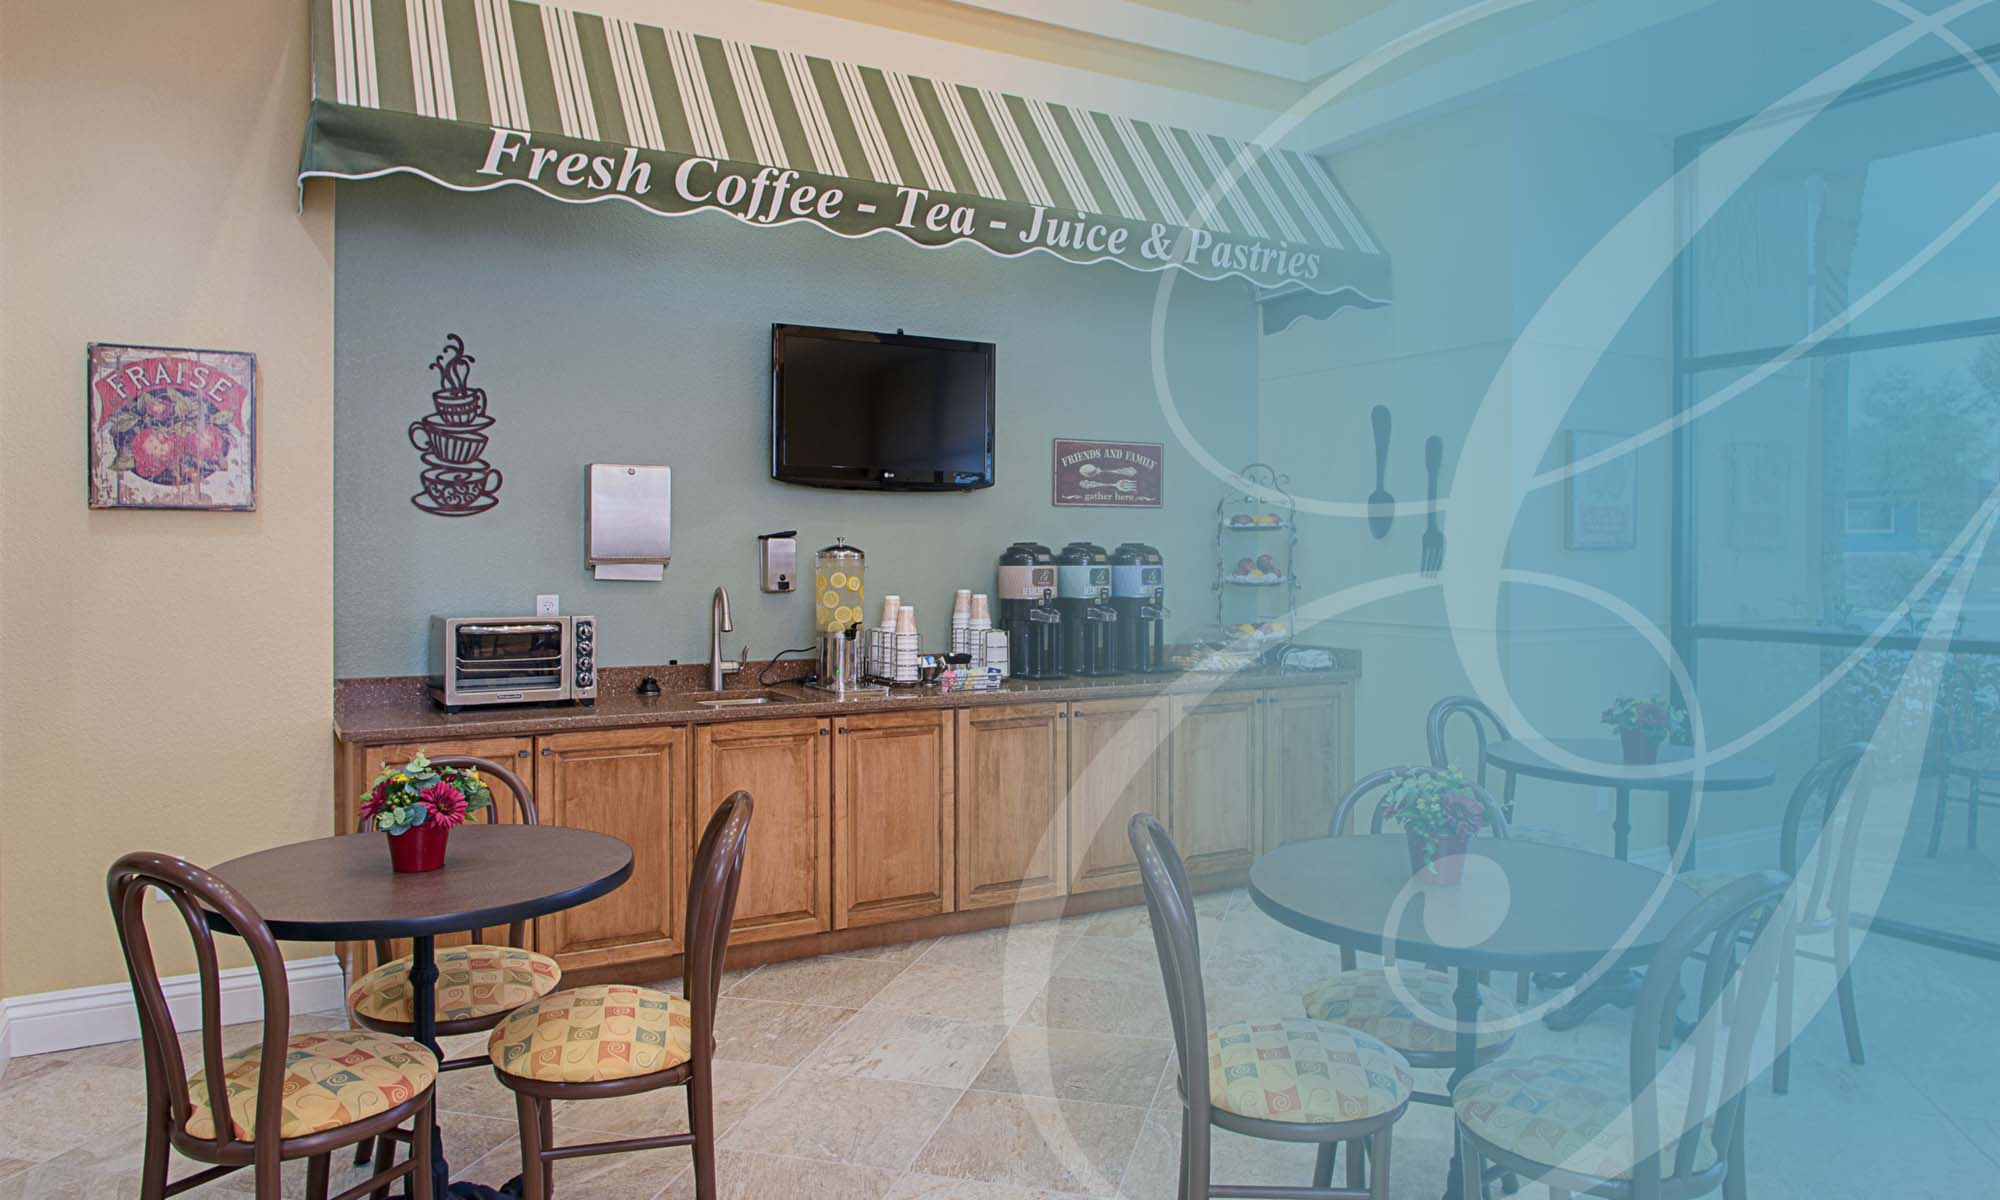 Cafe at Grand Villa of DeLand in DeLand, Florida